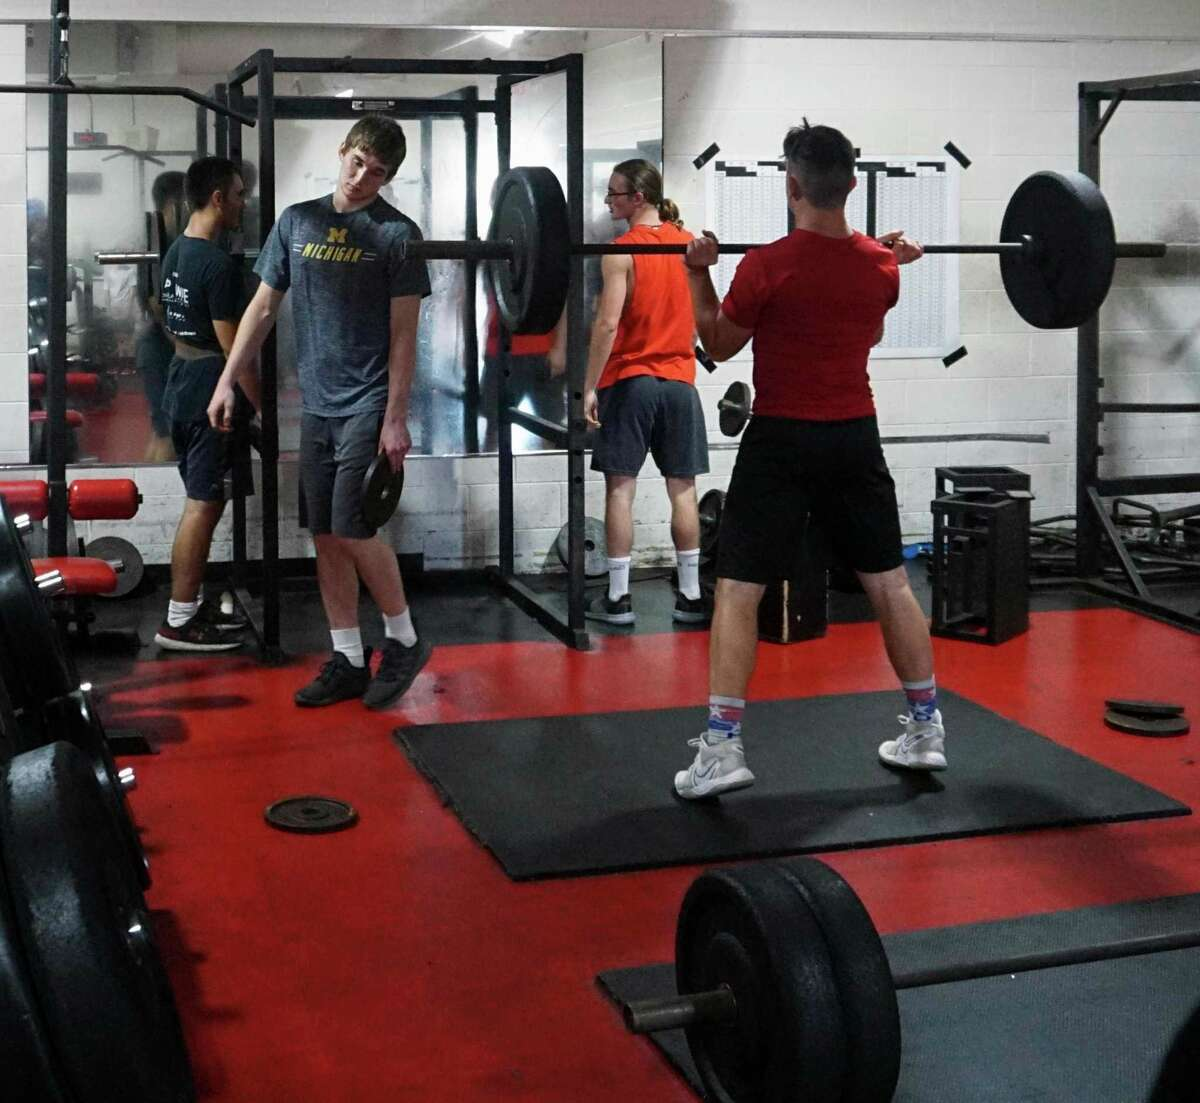 Several members of Reed City's football program have engaged in nightly weight-lifting sessions this summer to prepare for the upcoming season. (Herald-Review photo/Joe Judd)